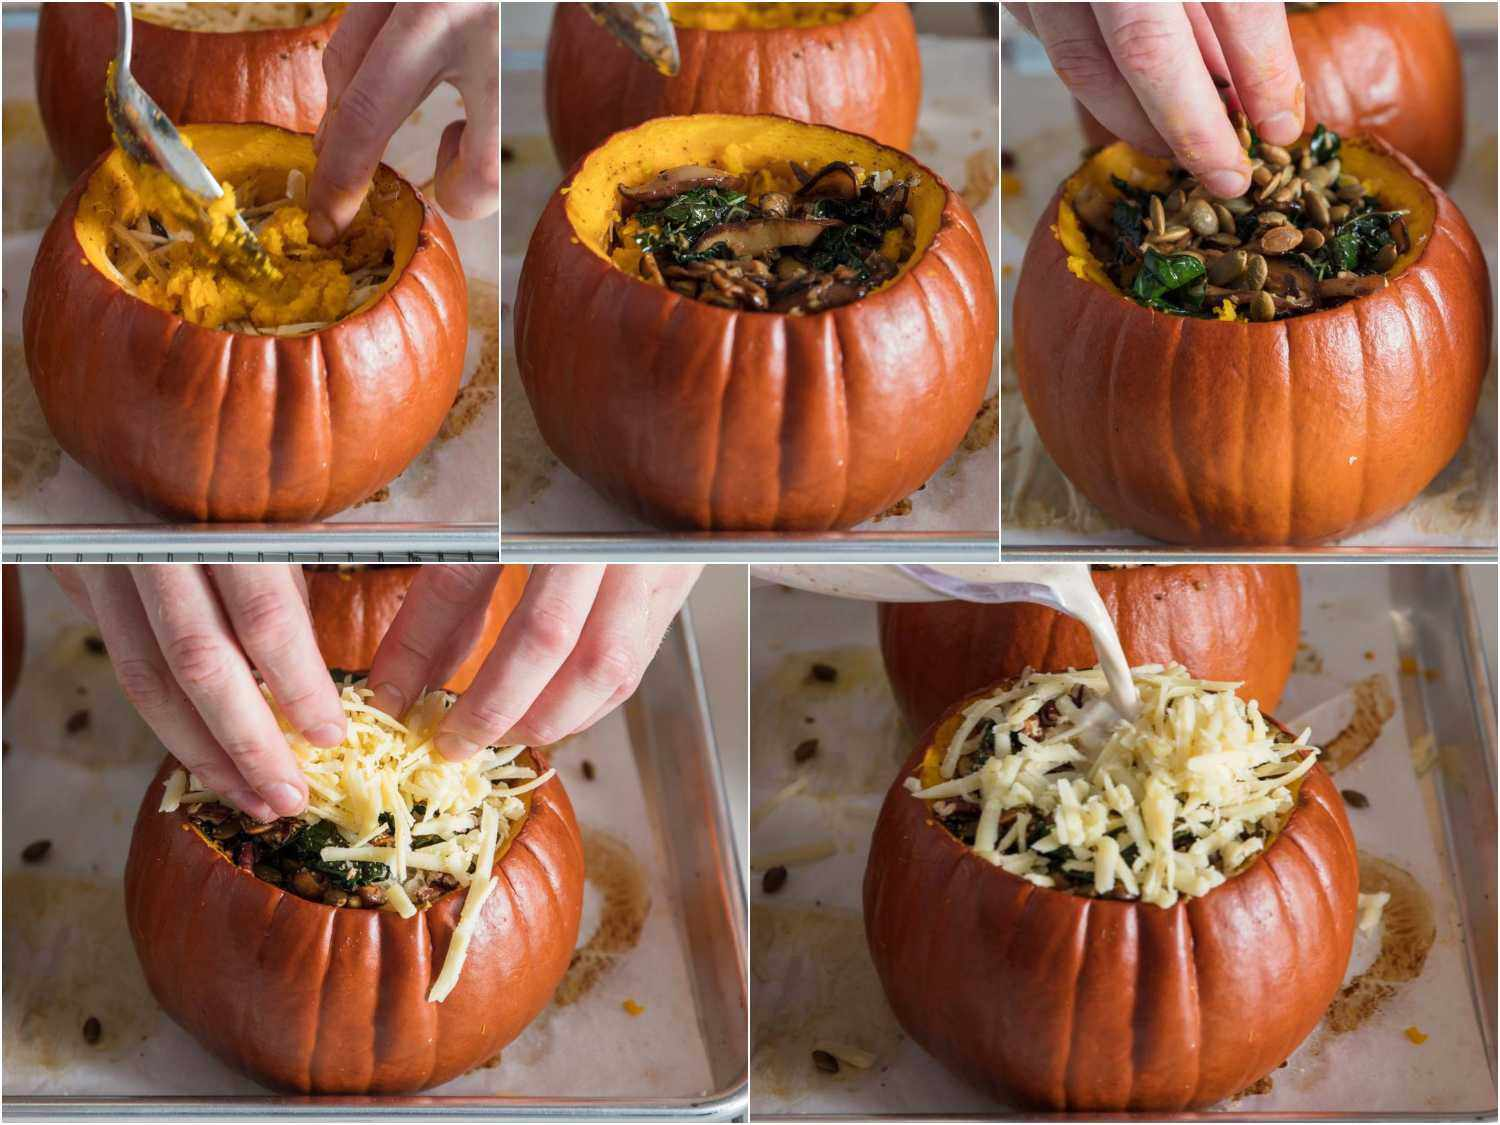 Photo collage showing final layers of stuffed pumpkins.